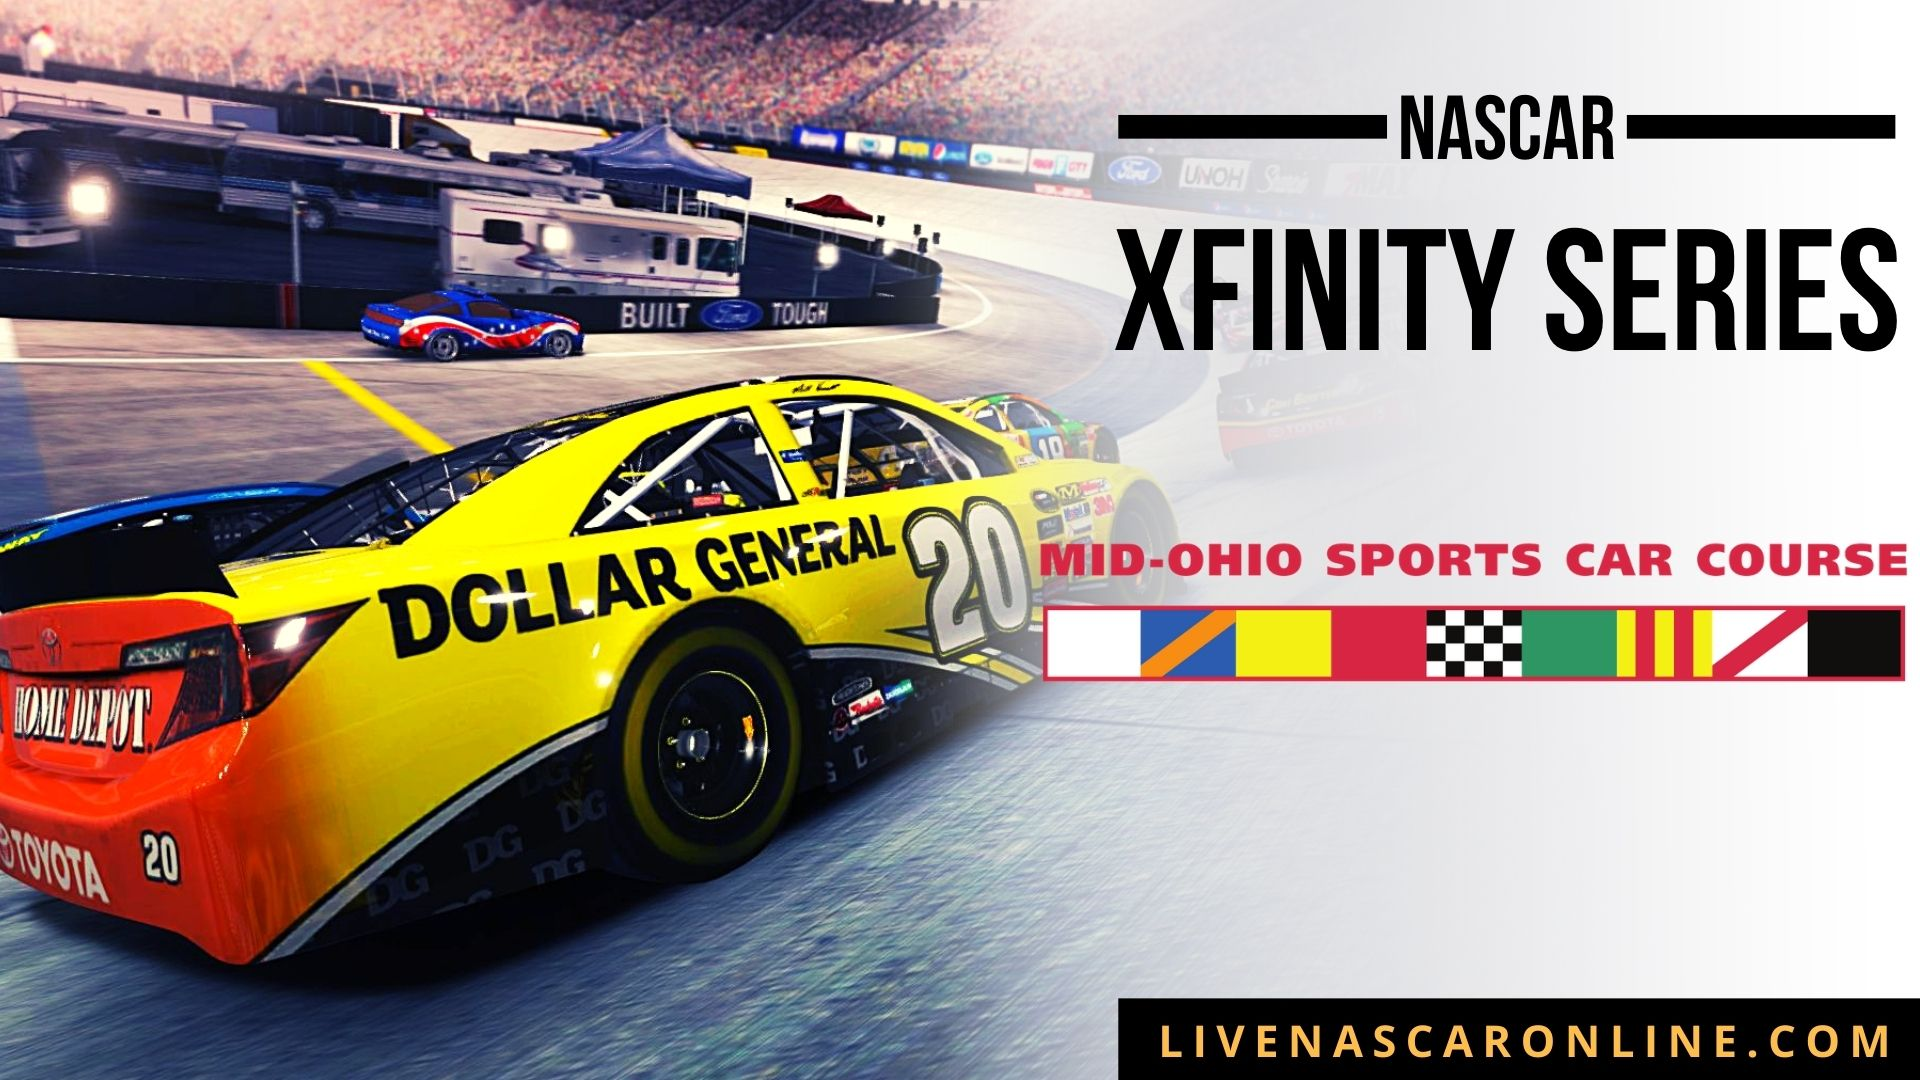 NASCAR Xfinity Race at Mid-Ohio Live Stream 2021